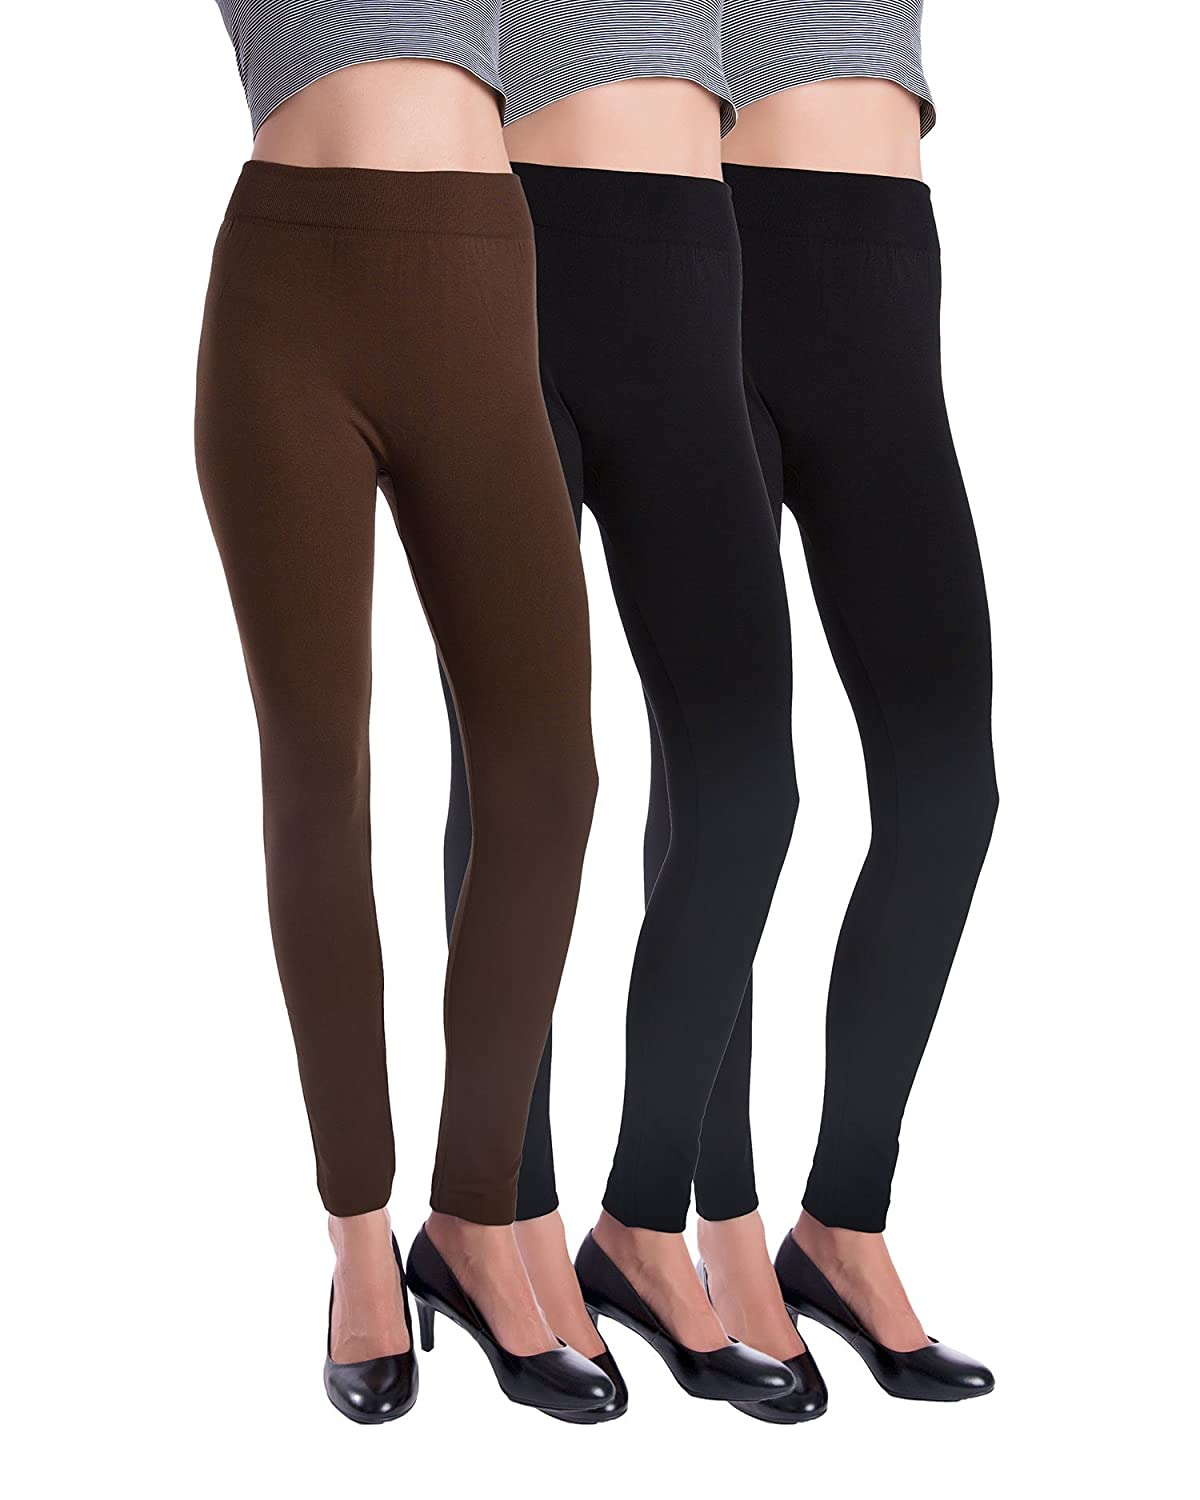 59b0e65e73e26 Homma Premium Quality Leggings | Made of Thick Stretchy Fleece Material  Ultra Soft Feel Material Fleece lined for warmth and comfort